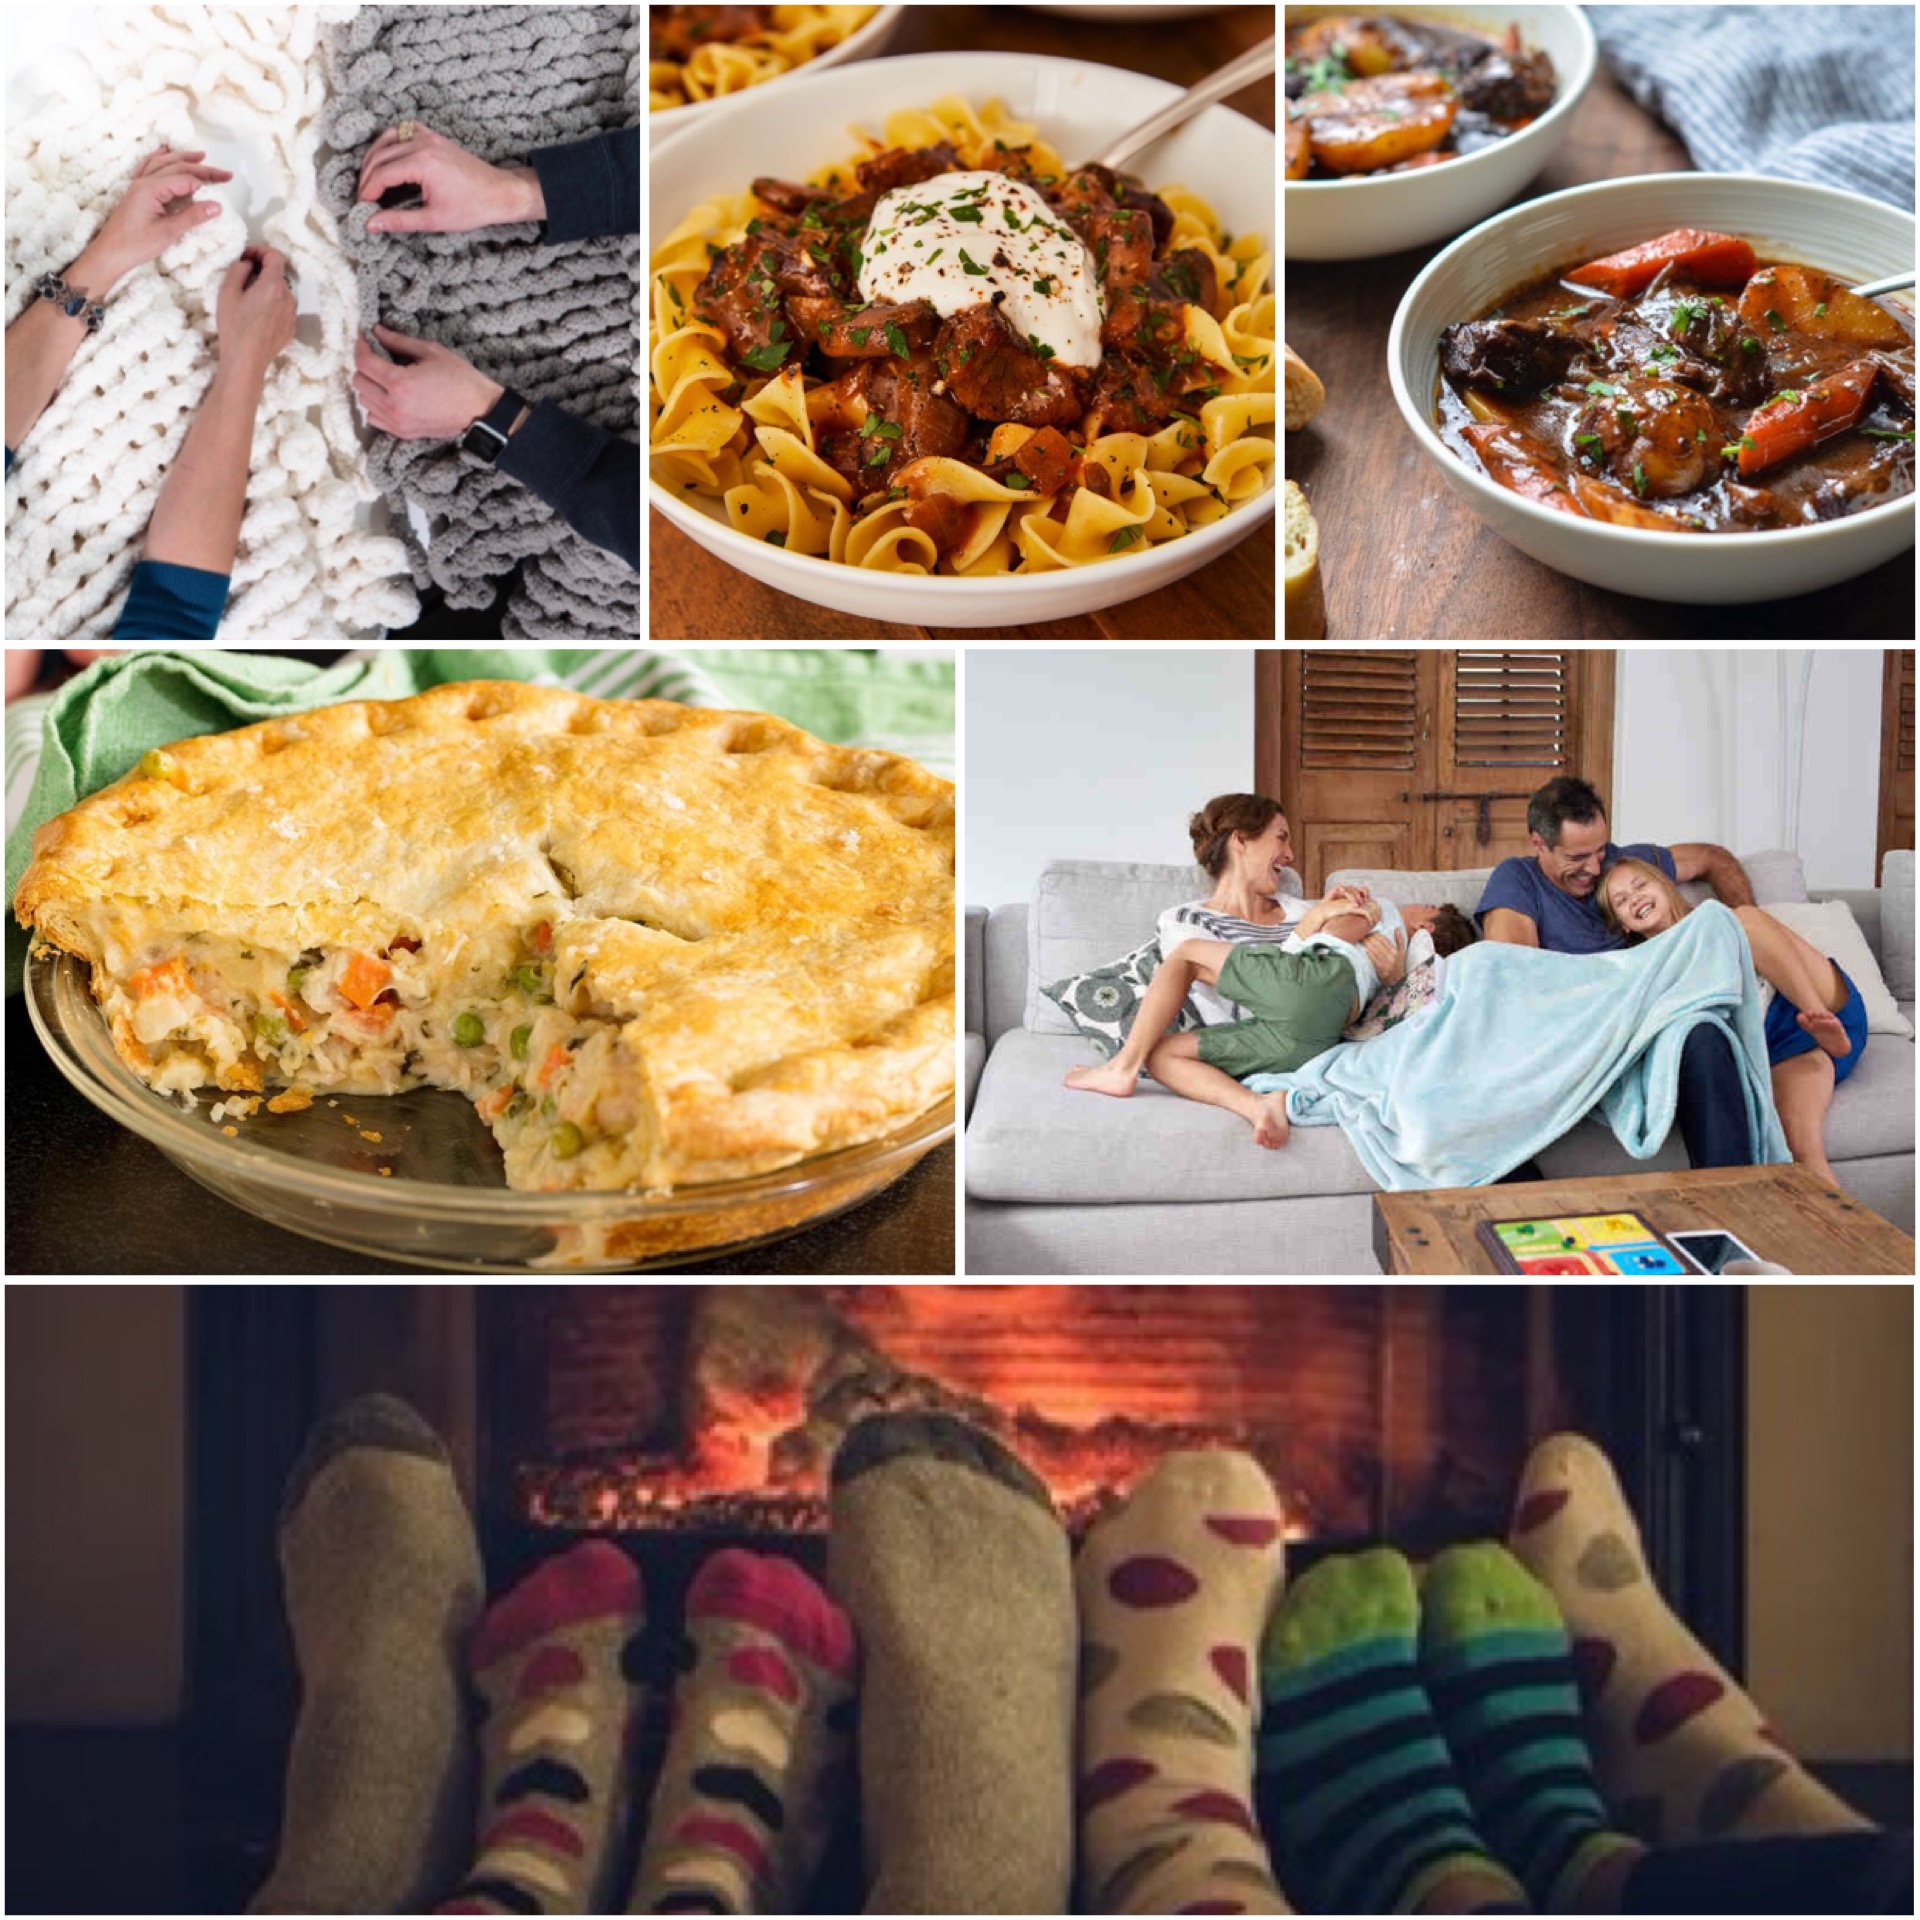 Warm Meals & Creative Pastimes For The Cold Weather